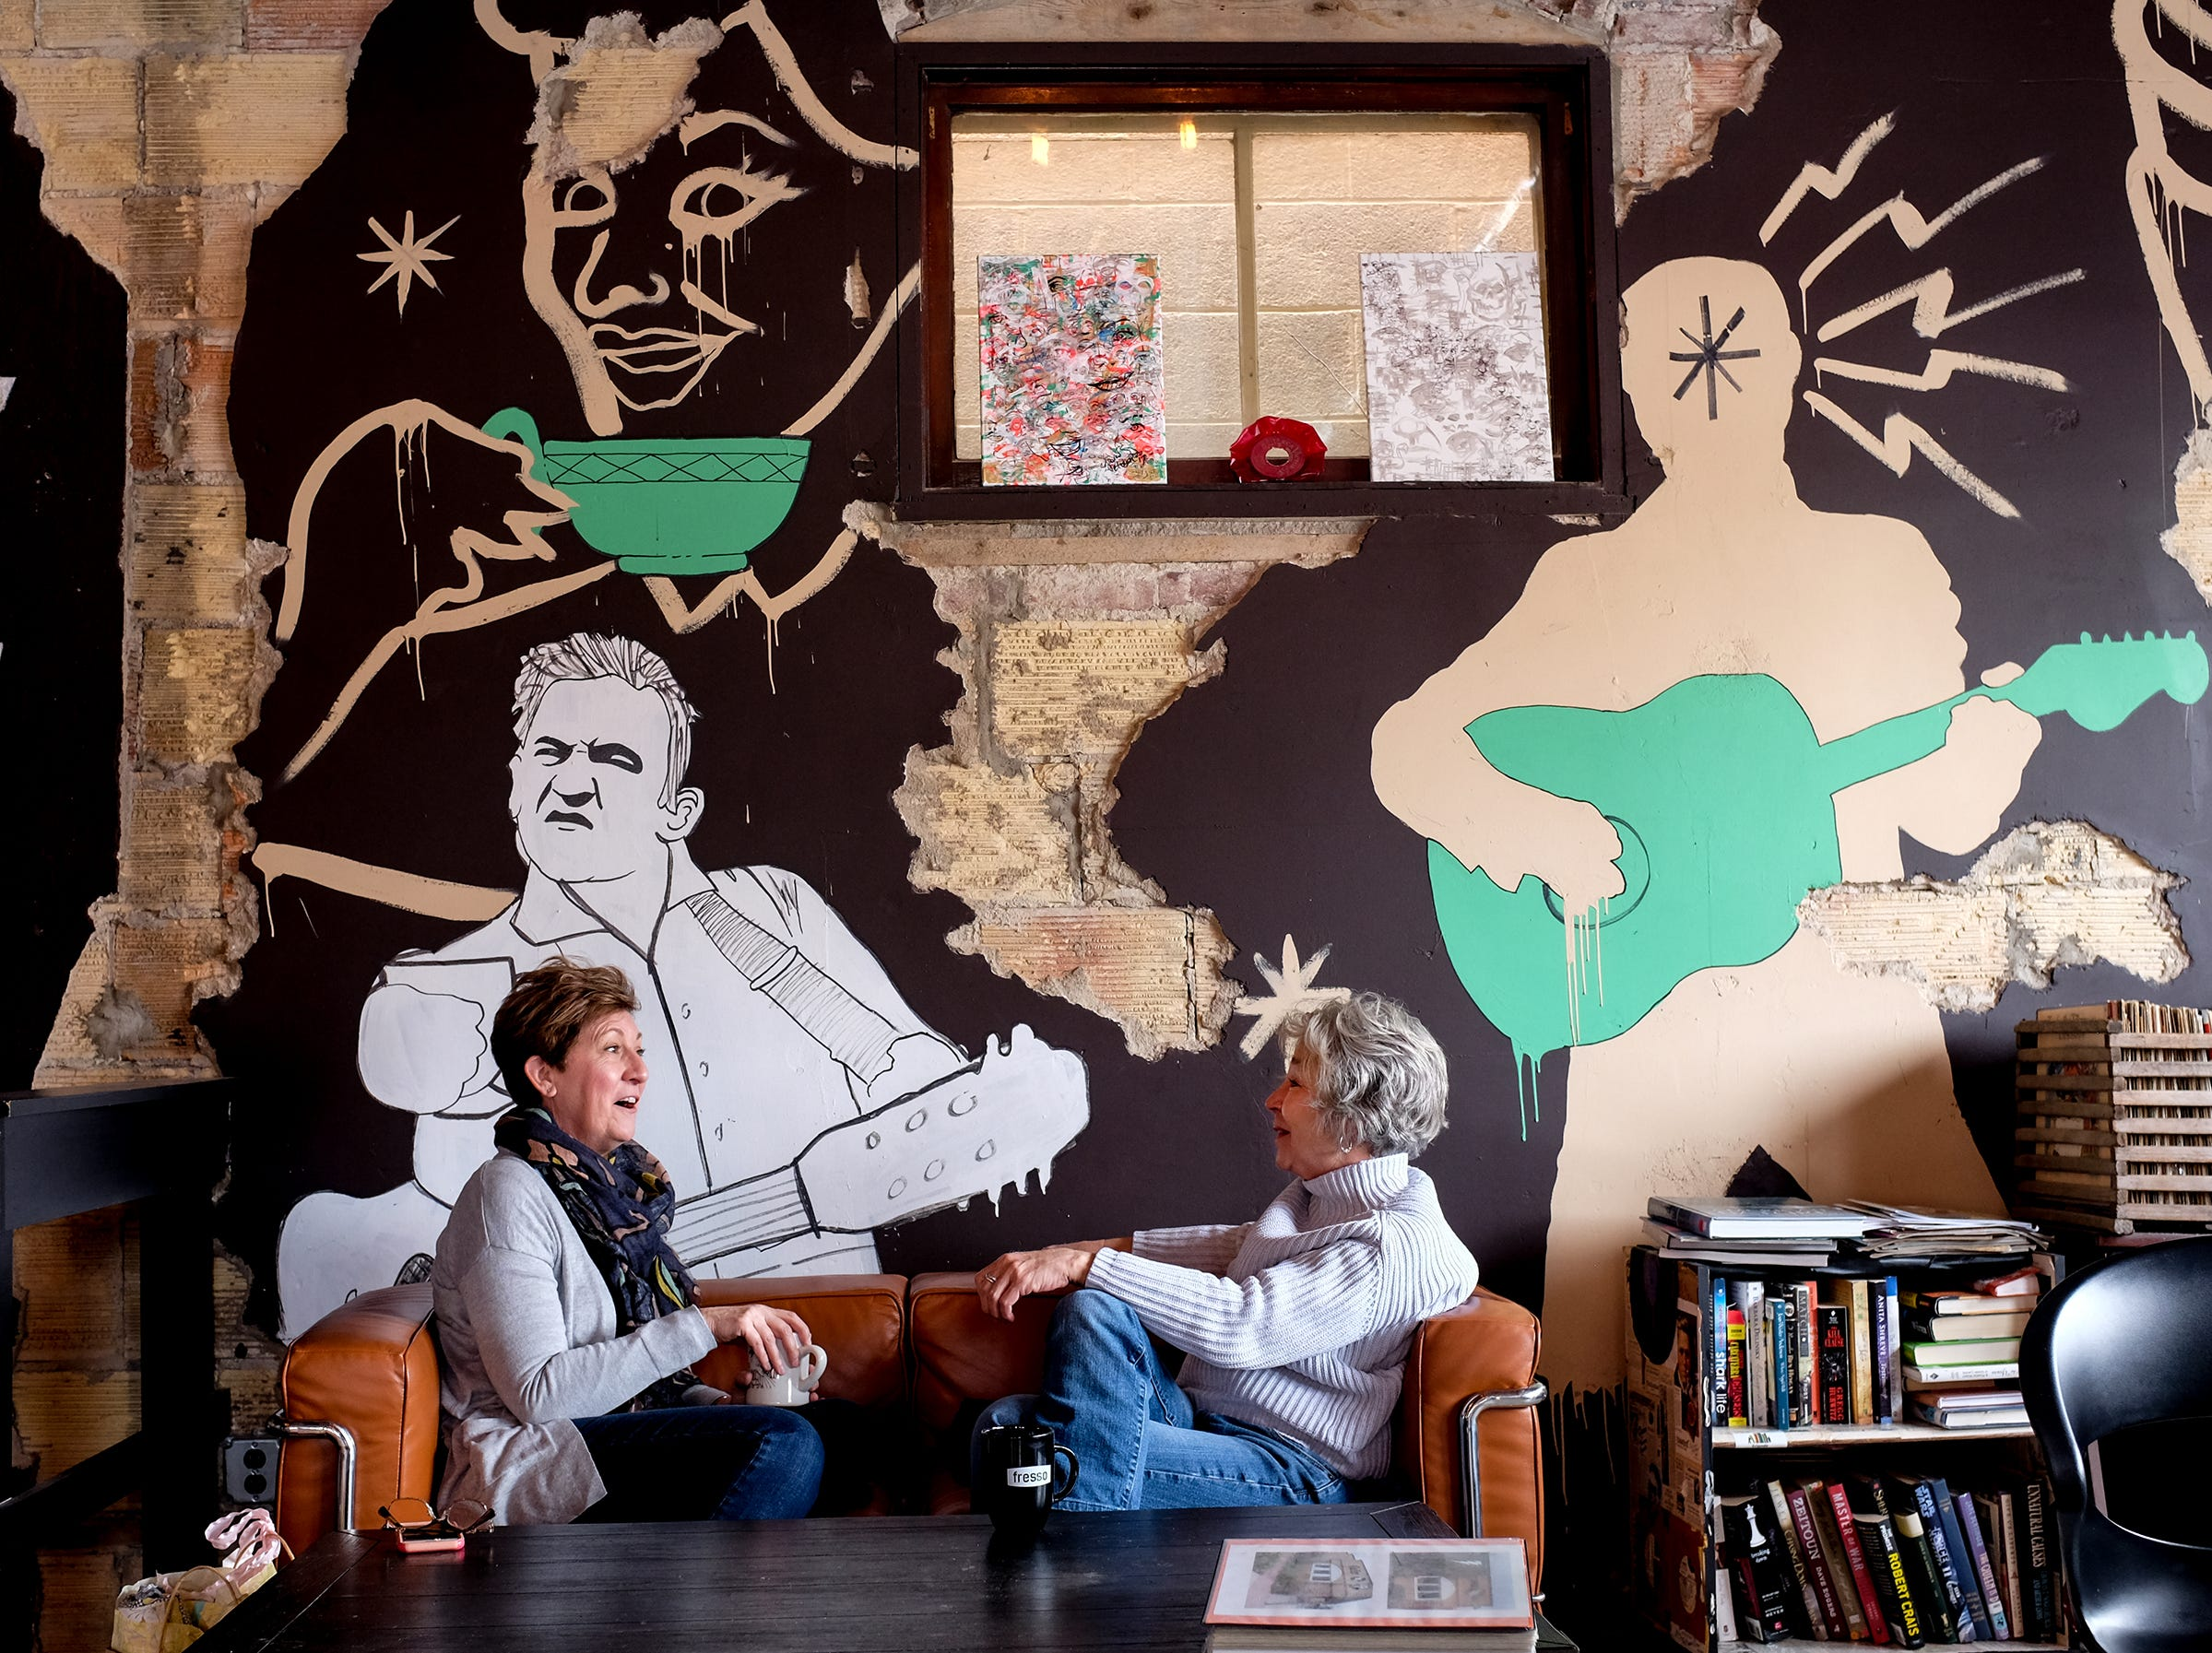 Loralee Schultz, left, from Grand Ledge and sister-in-law Jean Schultz from East Lansing have a conversation at The Crafted Bean in DeWitt.